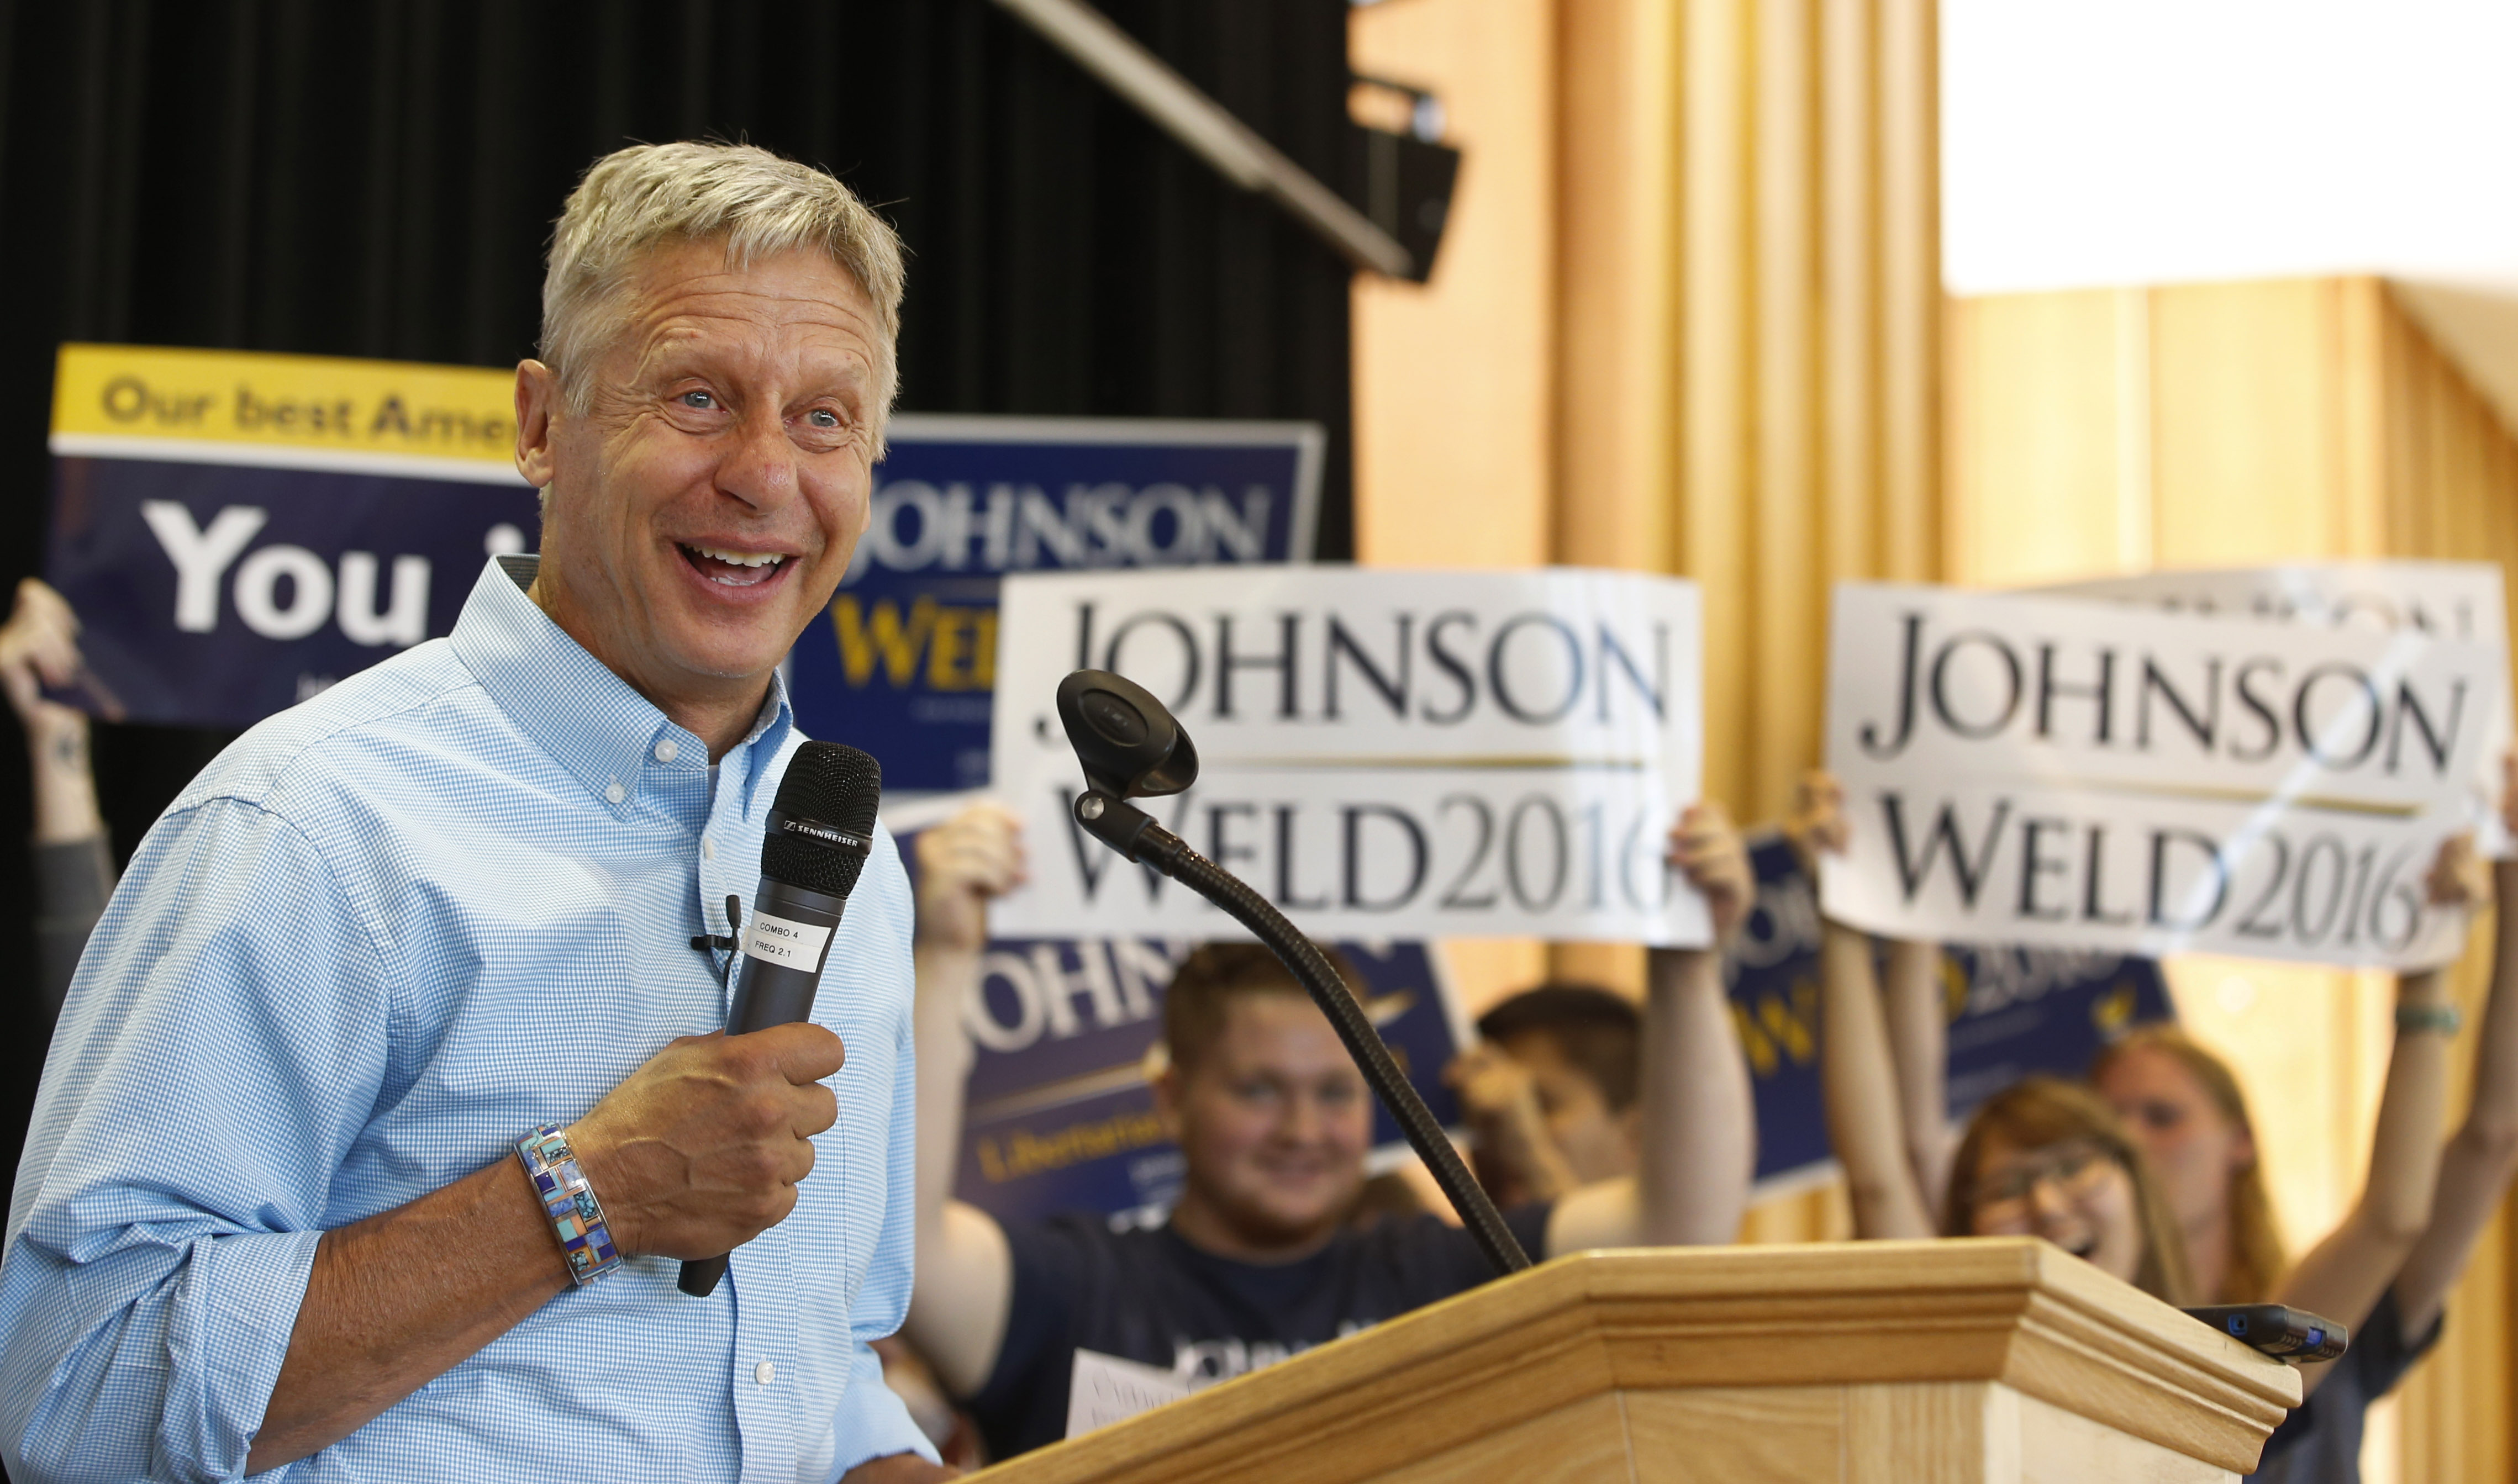 Libertarian presidential candidate Gary Johnson talks to a crowd of supporters at a rally on August 6, 2015 in Salt Lake City, Utah